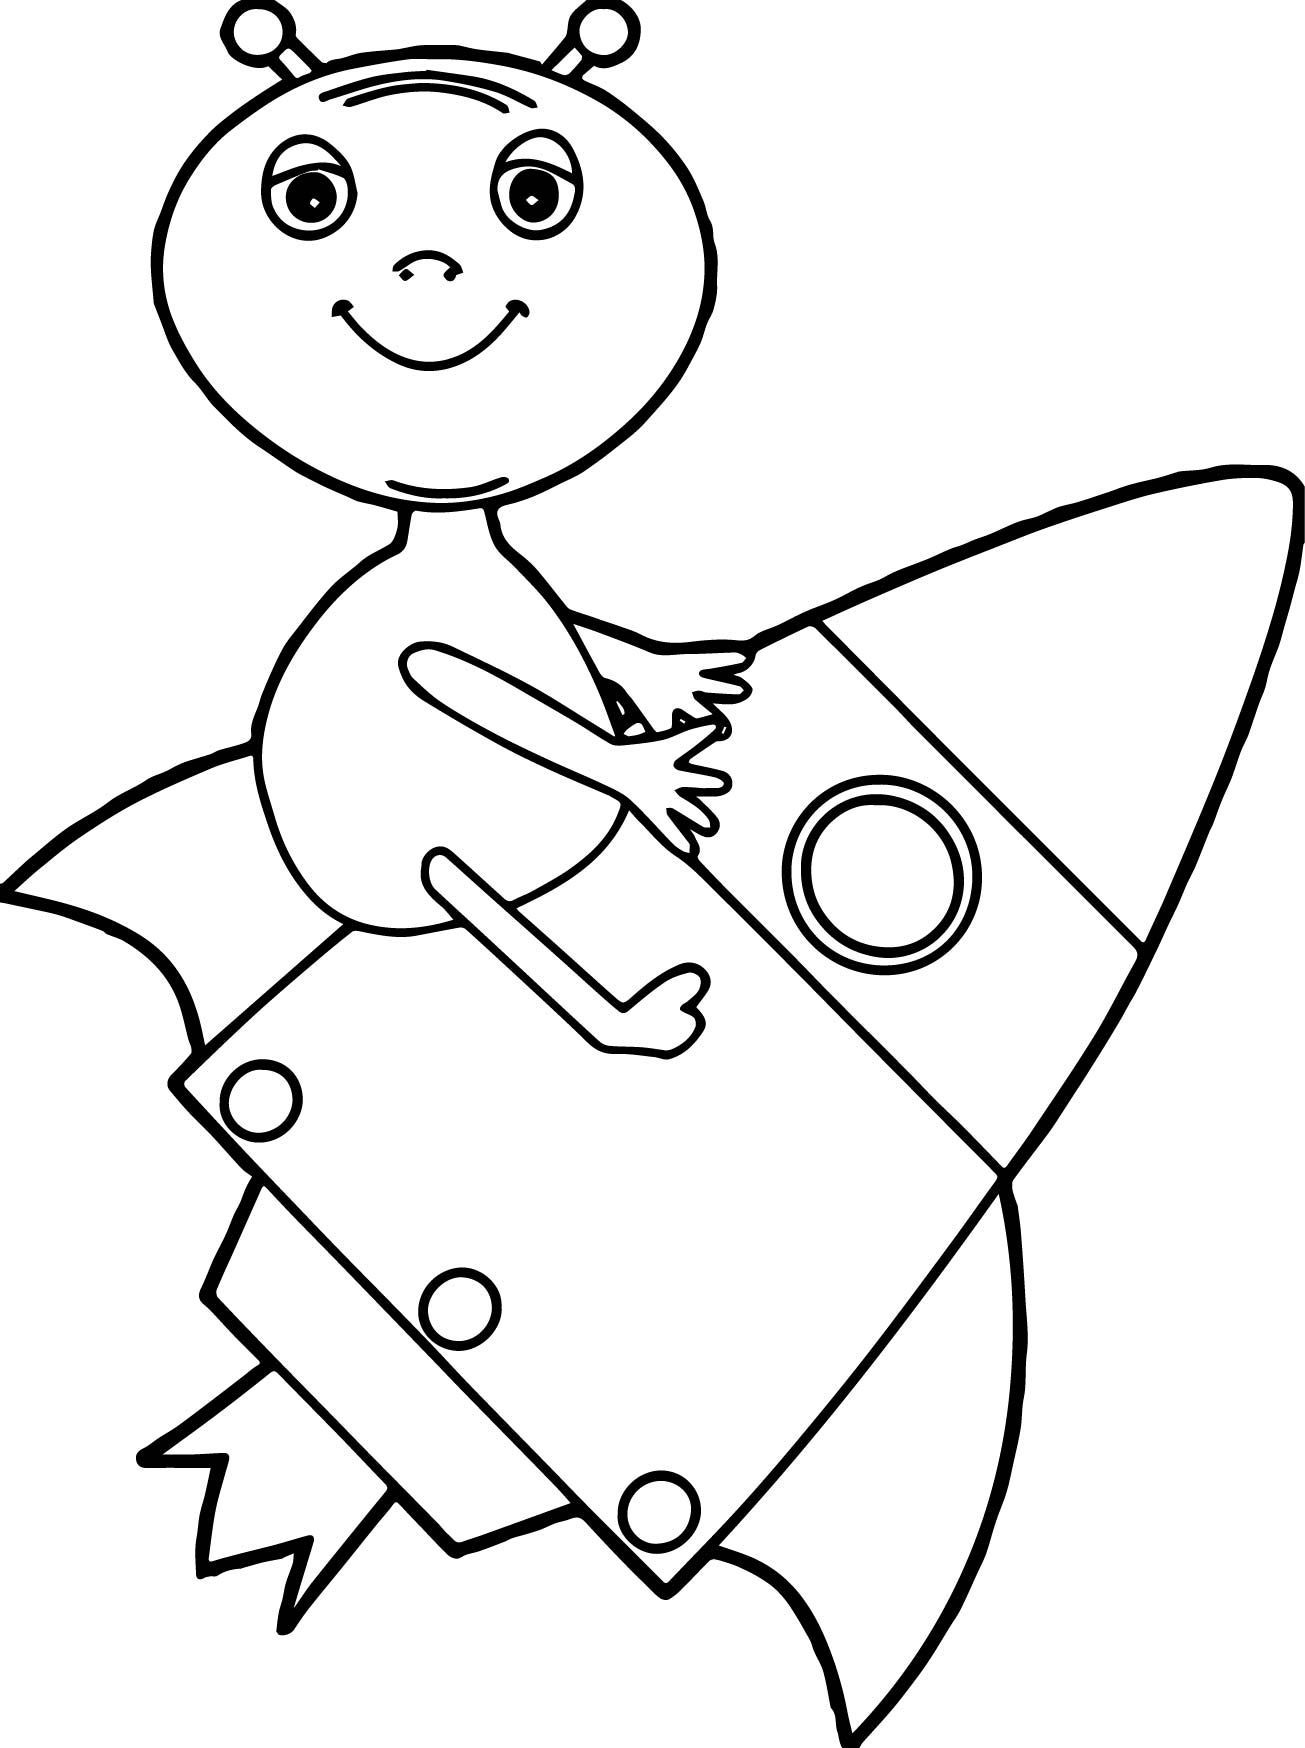 Cool Alien Drawing Rocket Coloring Page Dinosaur Coloring Pages Alien Drawings Coloring Pages In 2021 Dinosaur Coloring Pages Alien Drawings Toy Story Coloring Pages